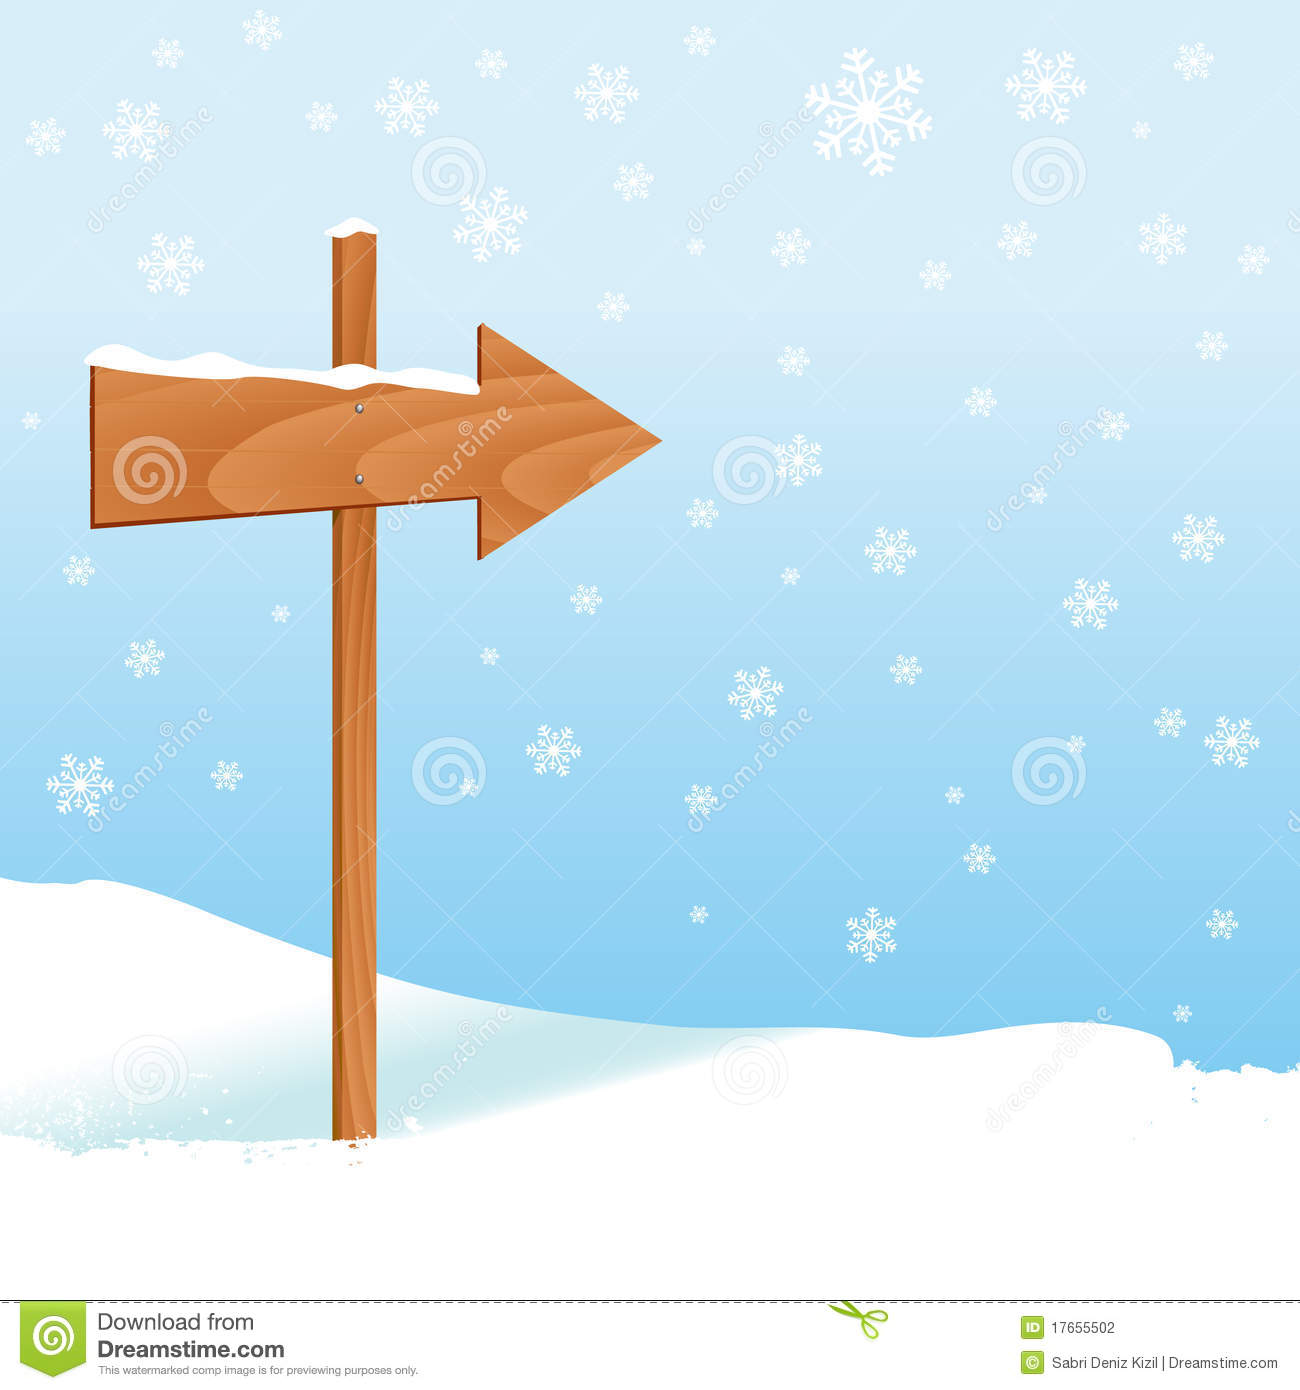 Winter Design With Direction Sign Stock Vector